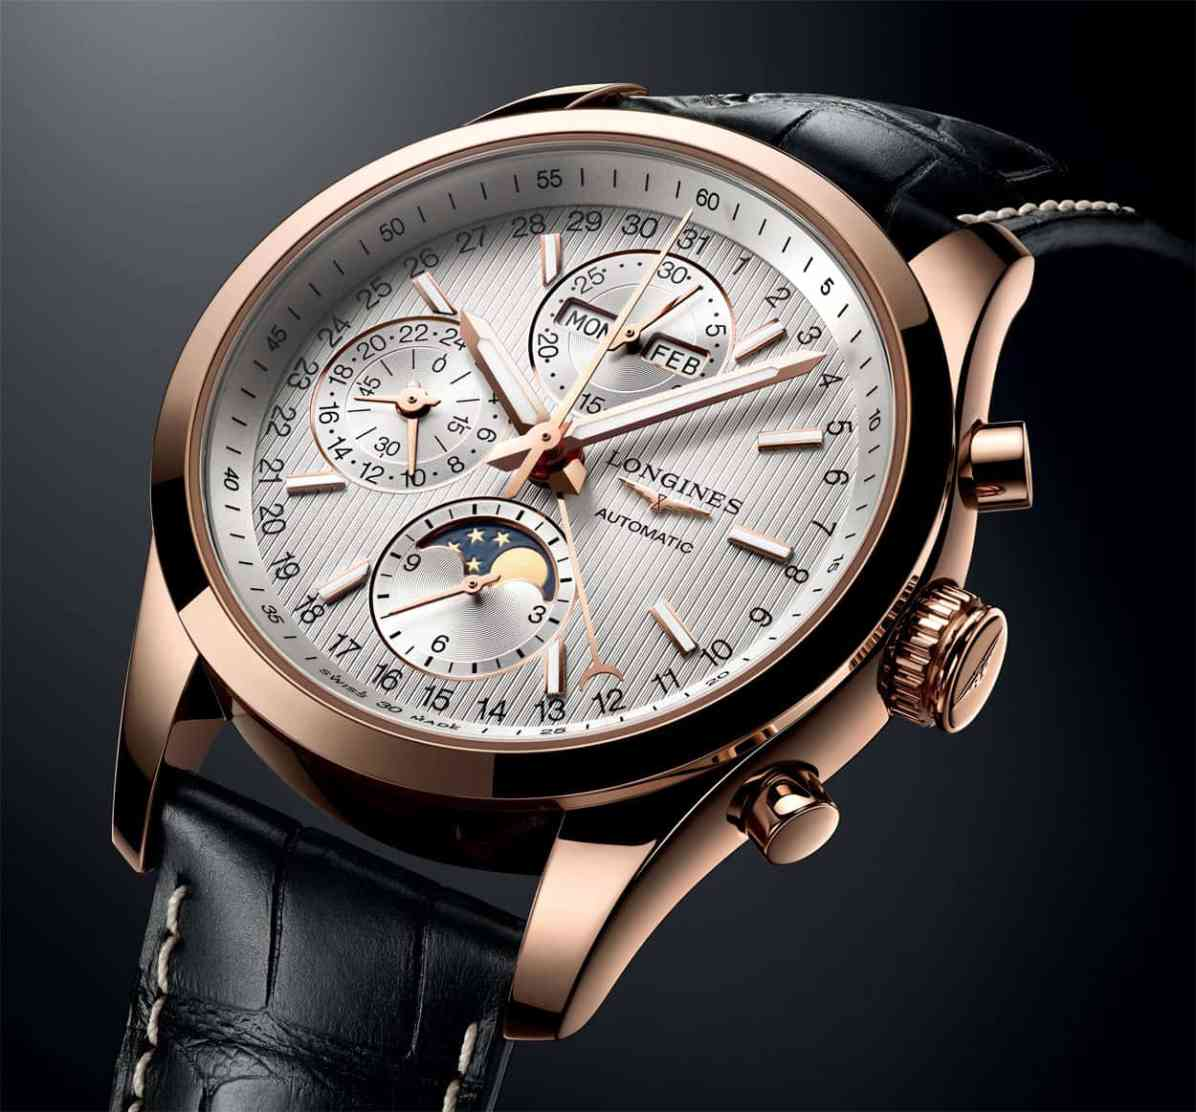 LonginesConquestClassicMoonphase-dial